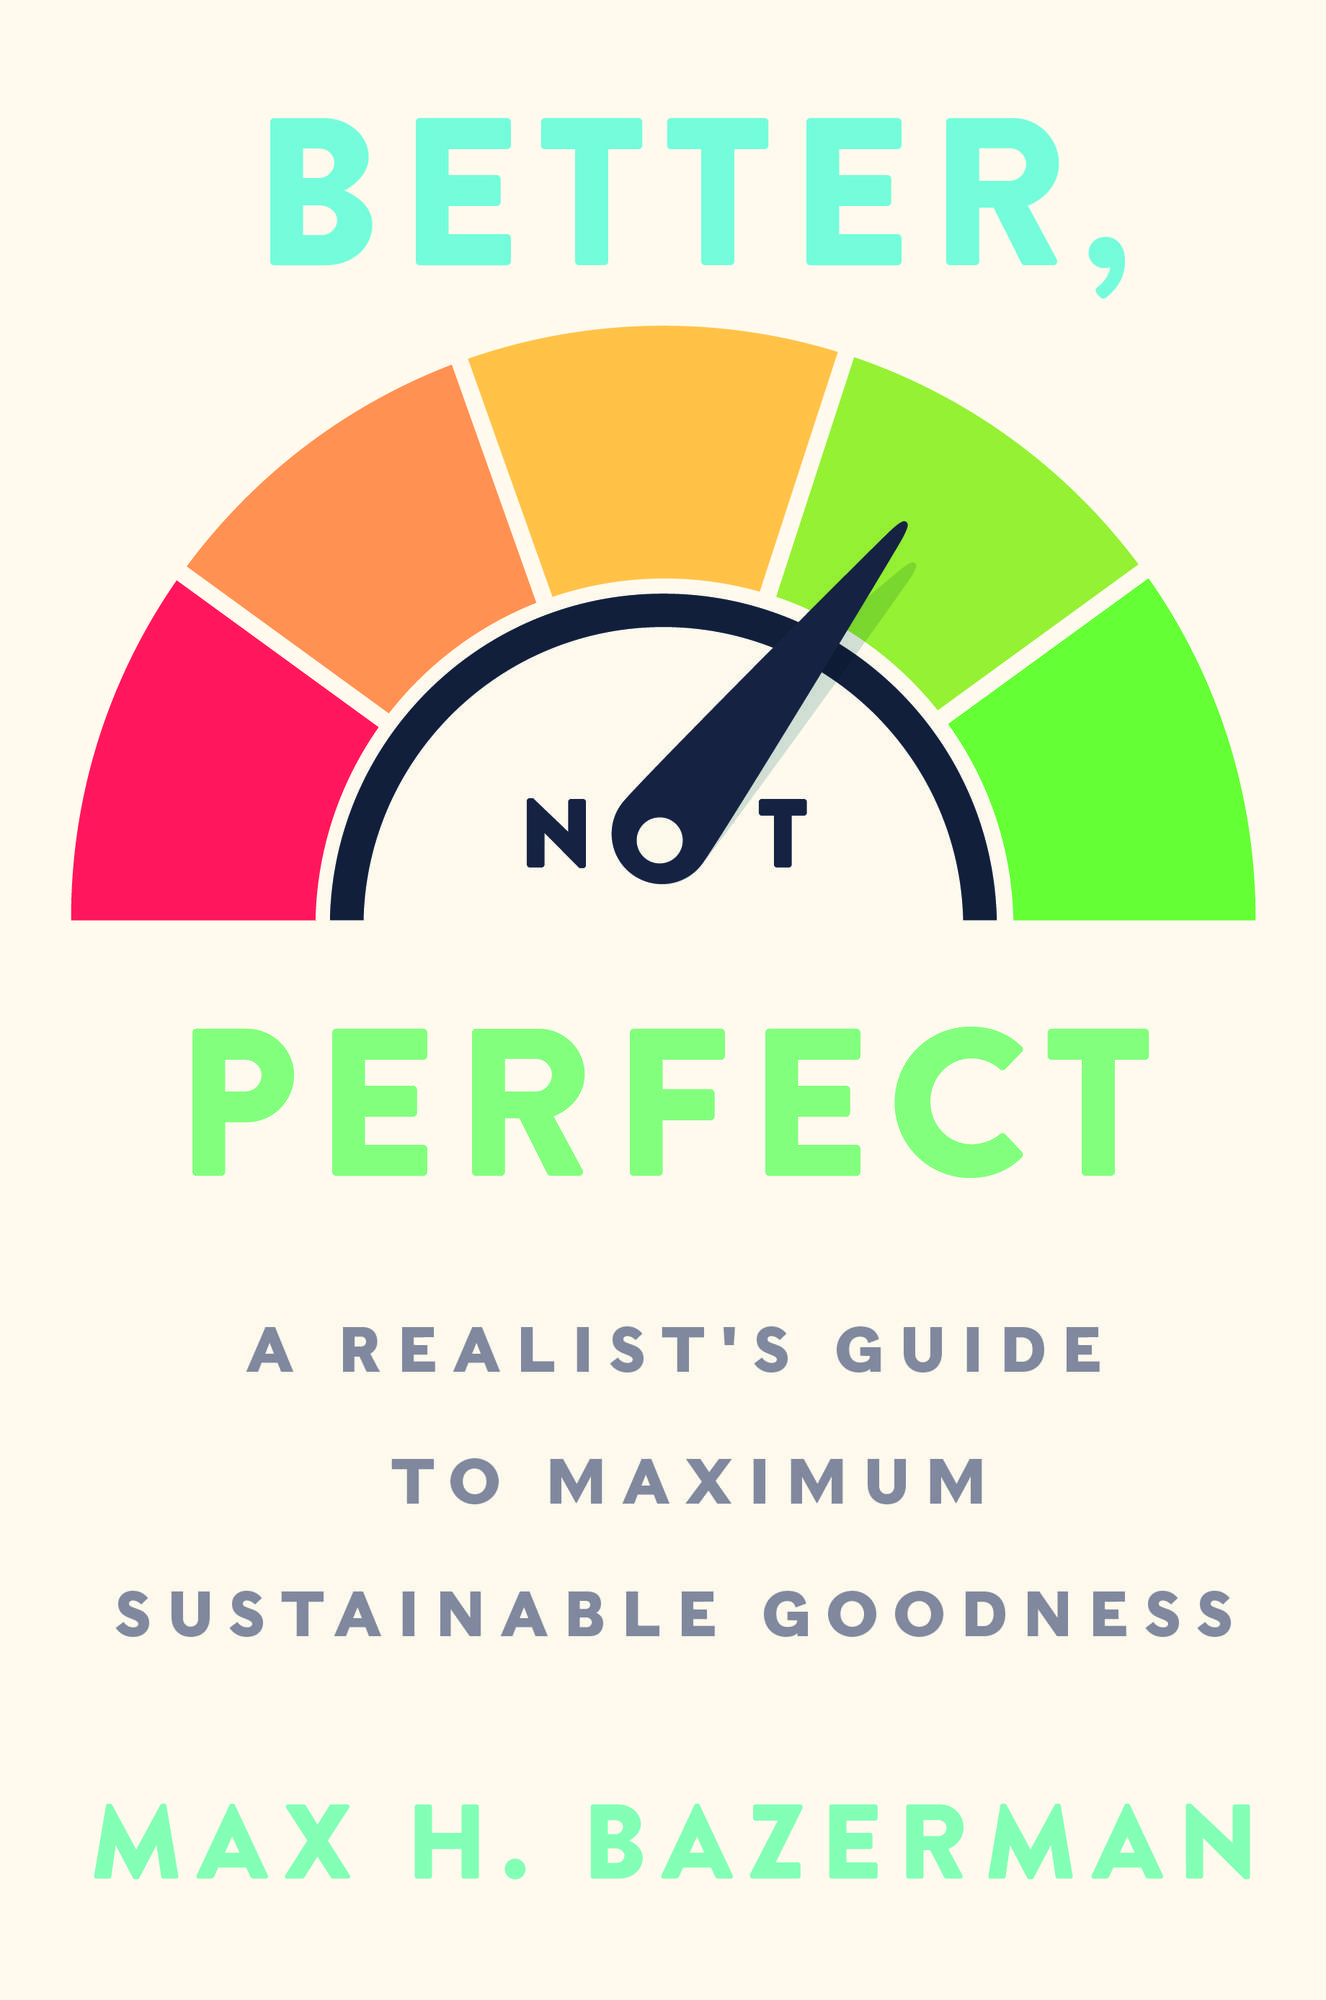 Better Not Perfect book cover